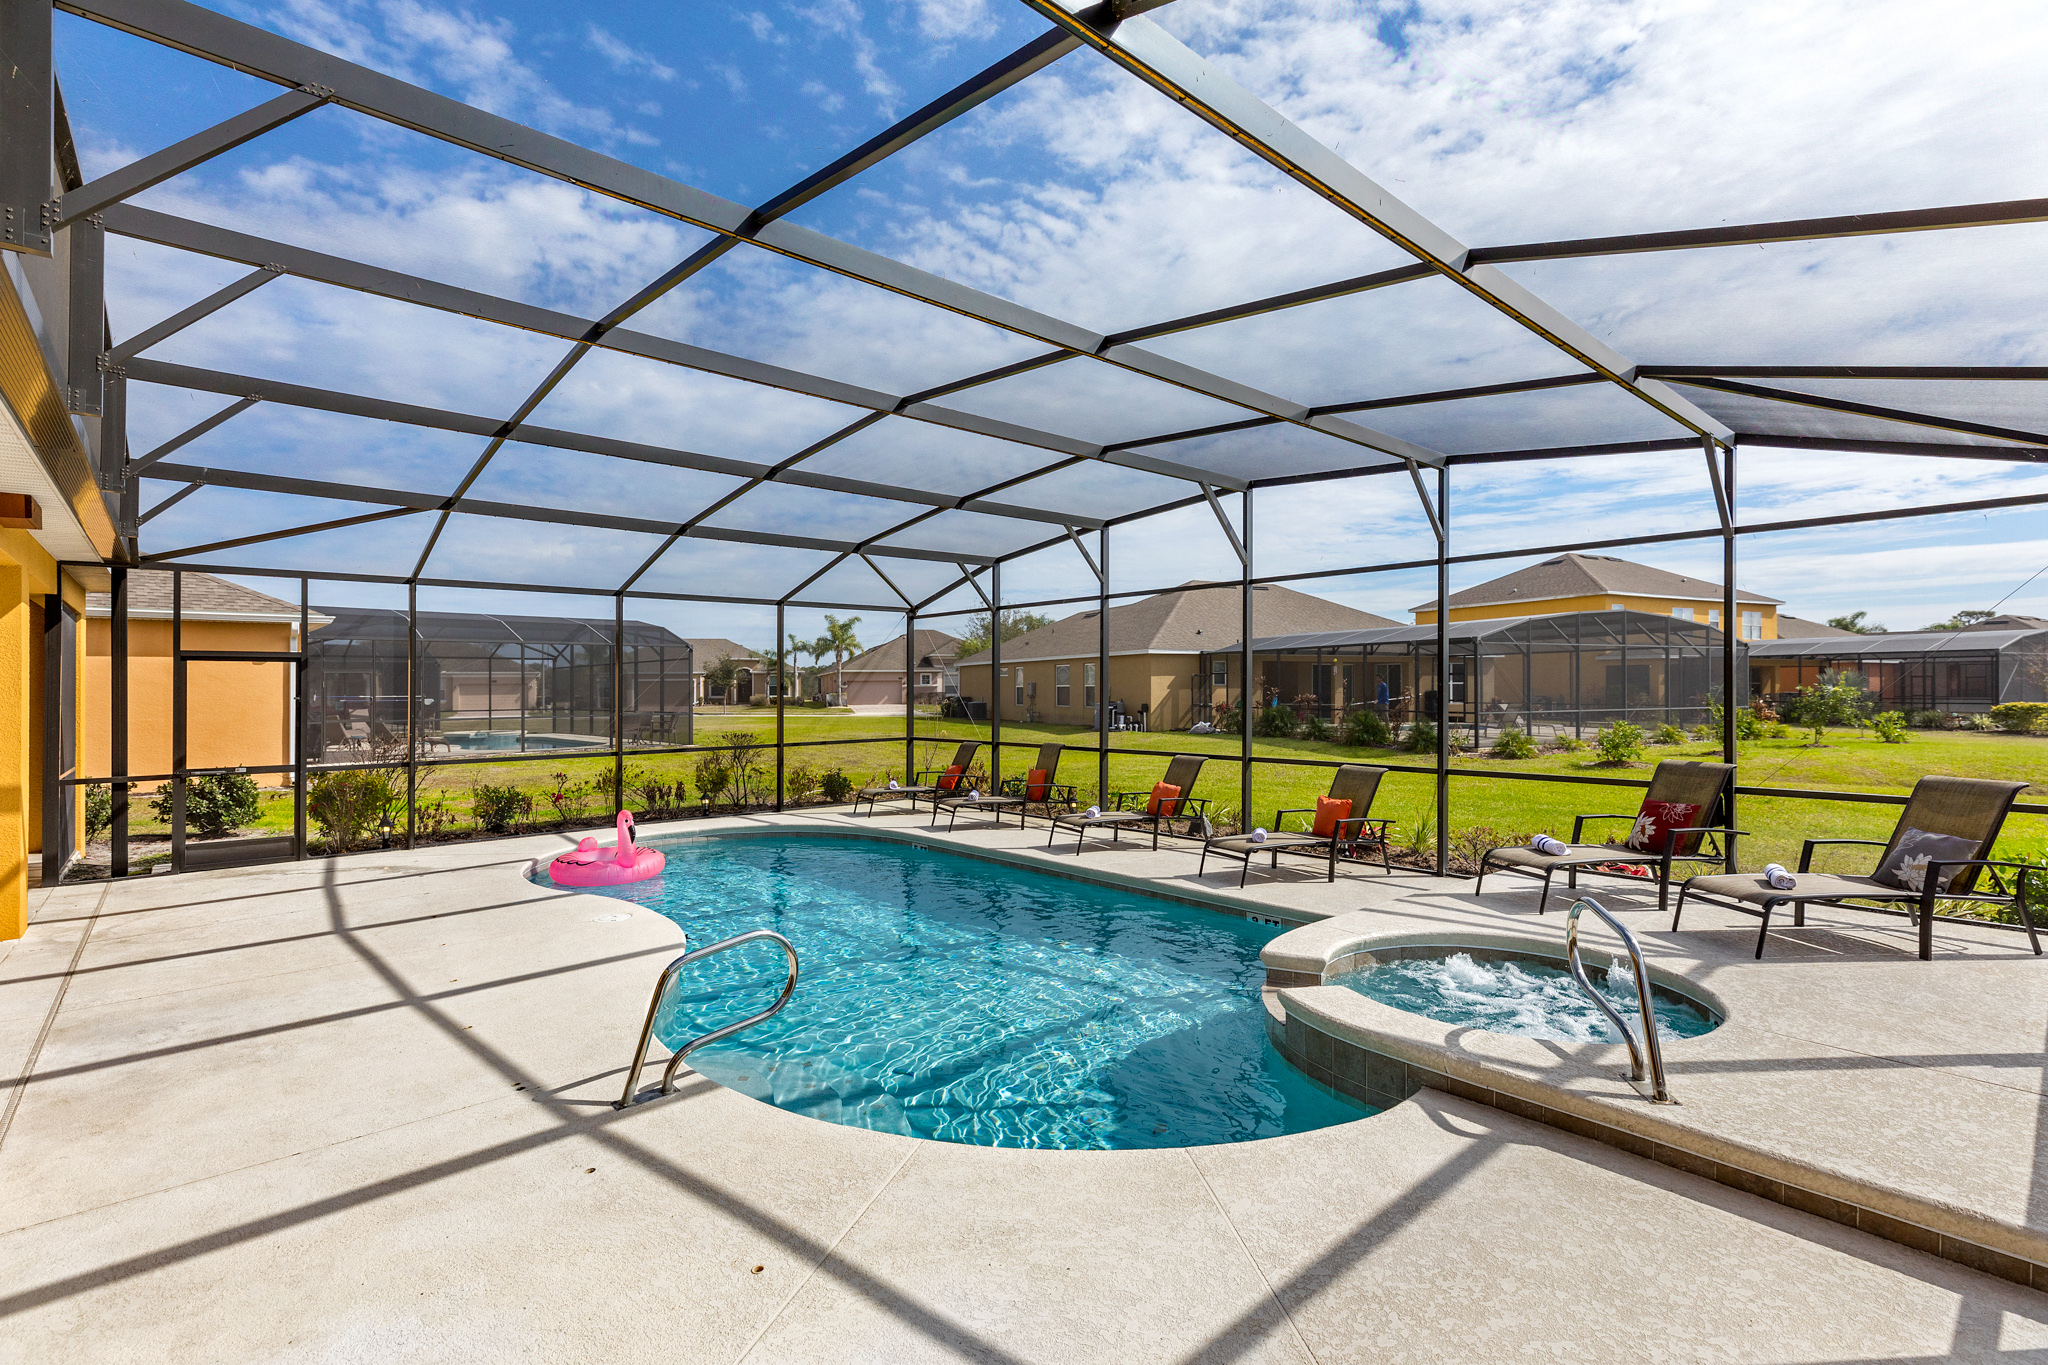 Watersong Resort/NW5984-146054